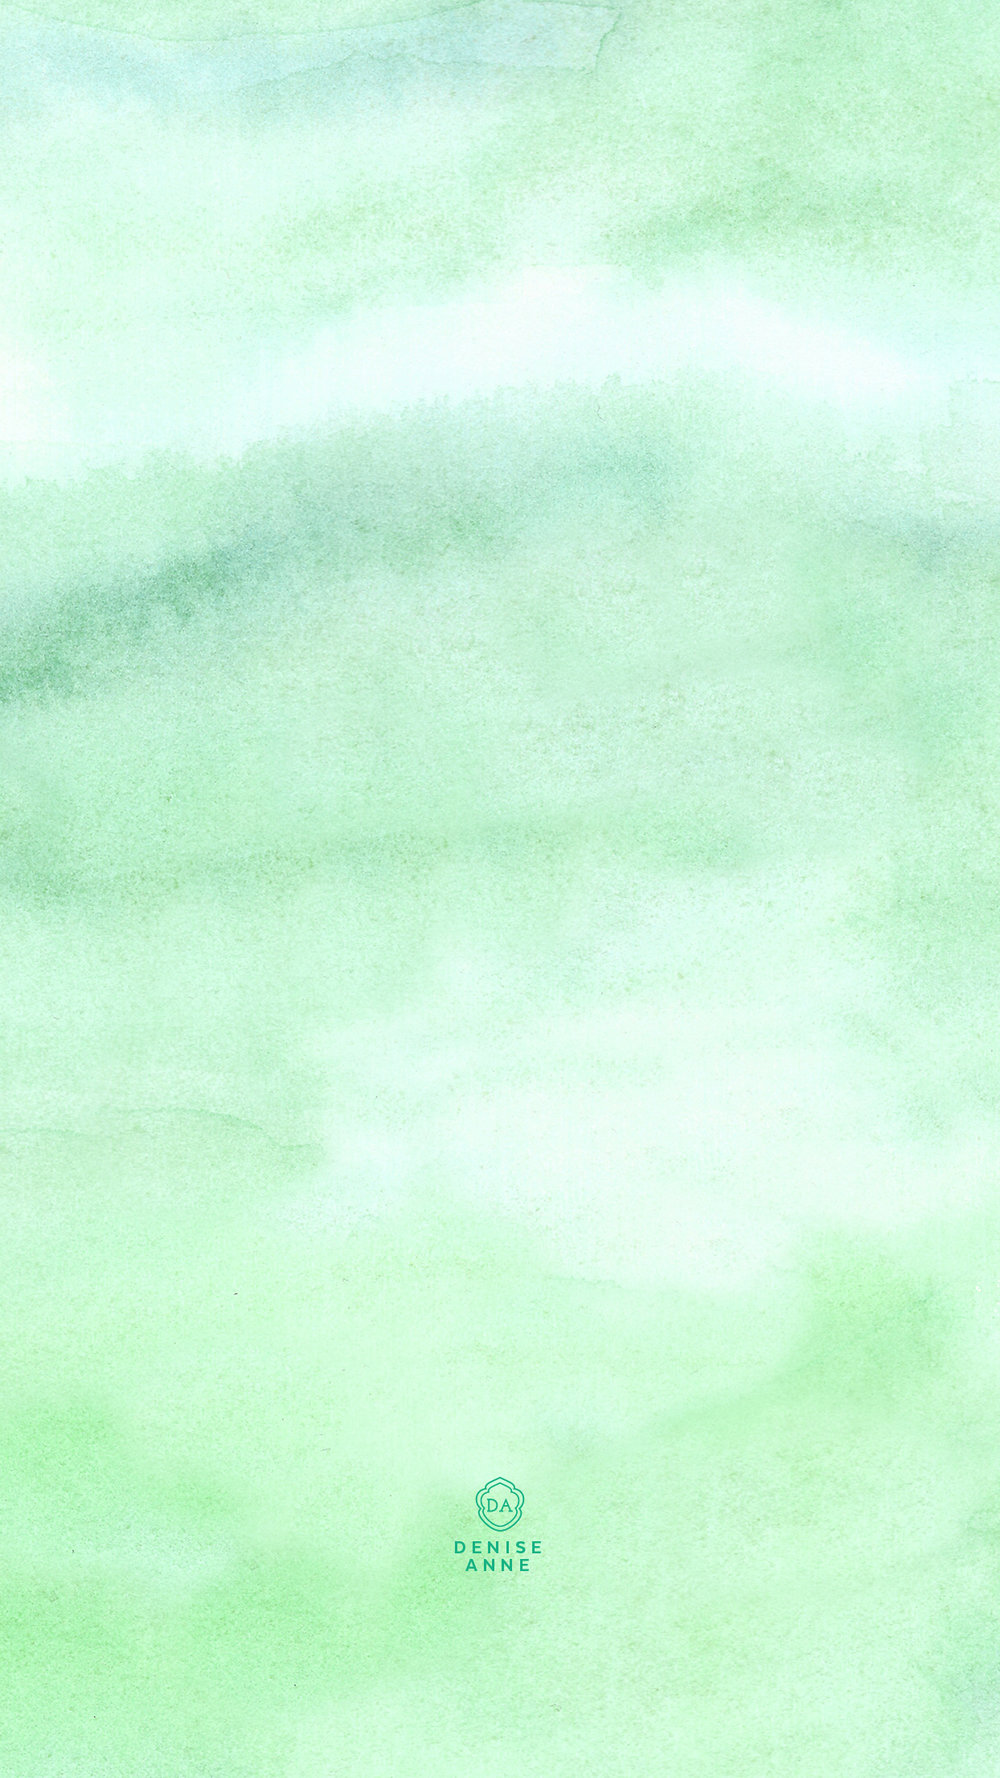 Watercolor Greens - click for download links